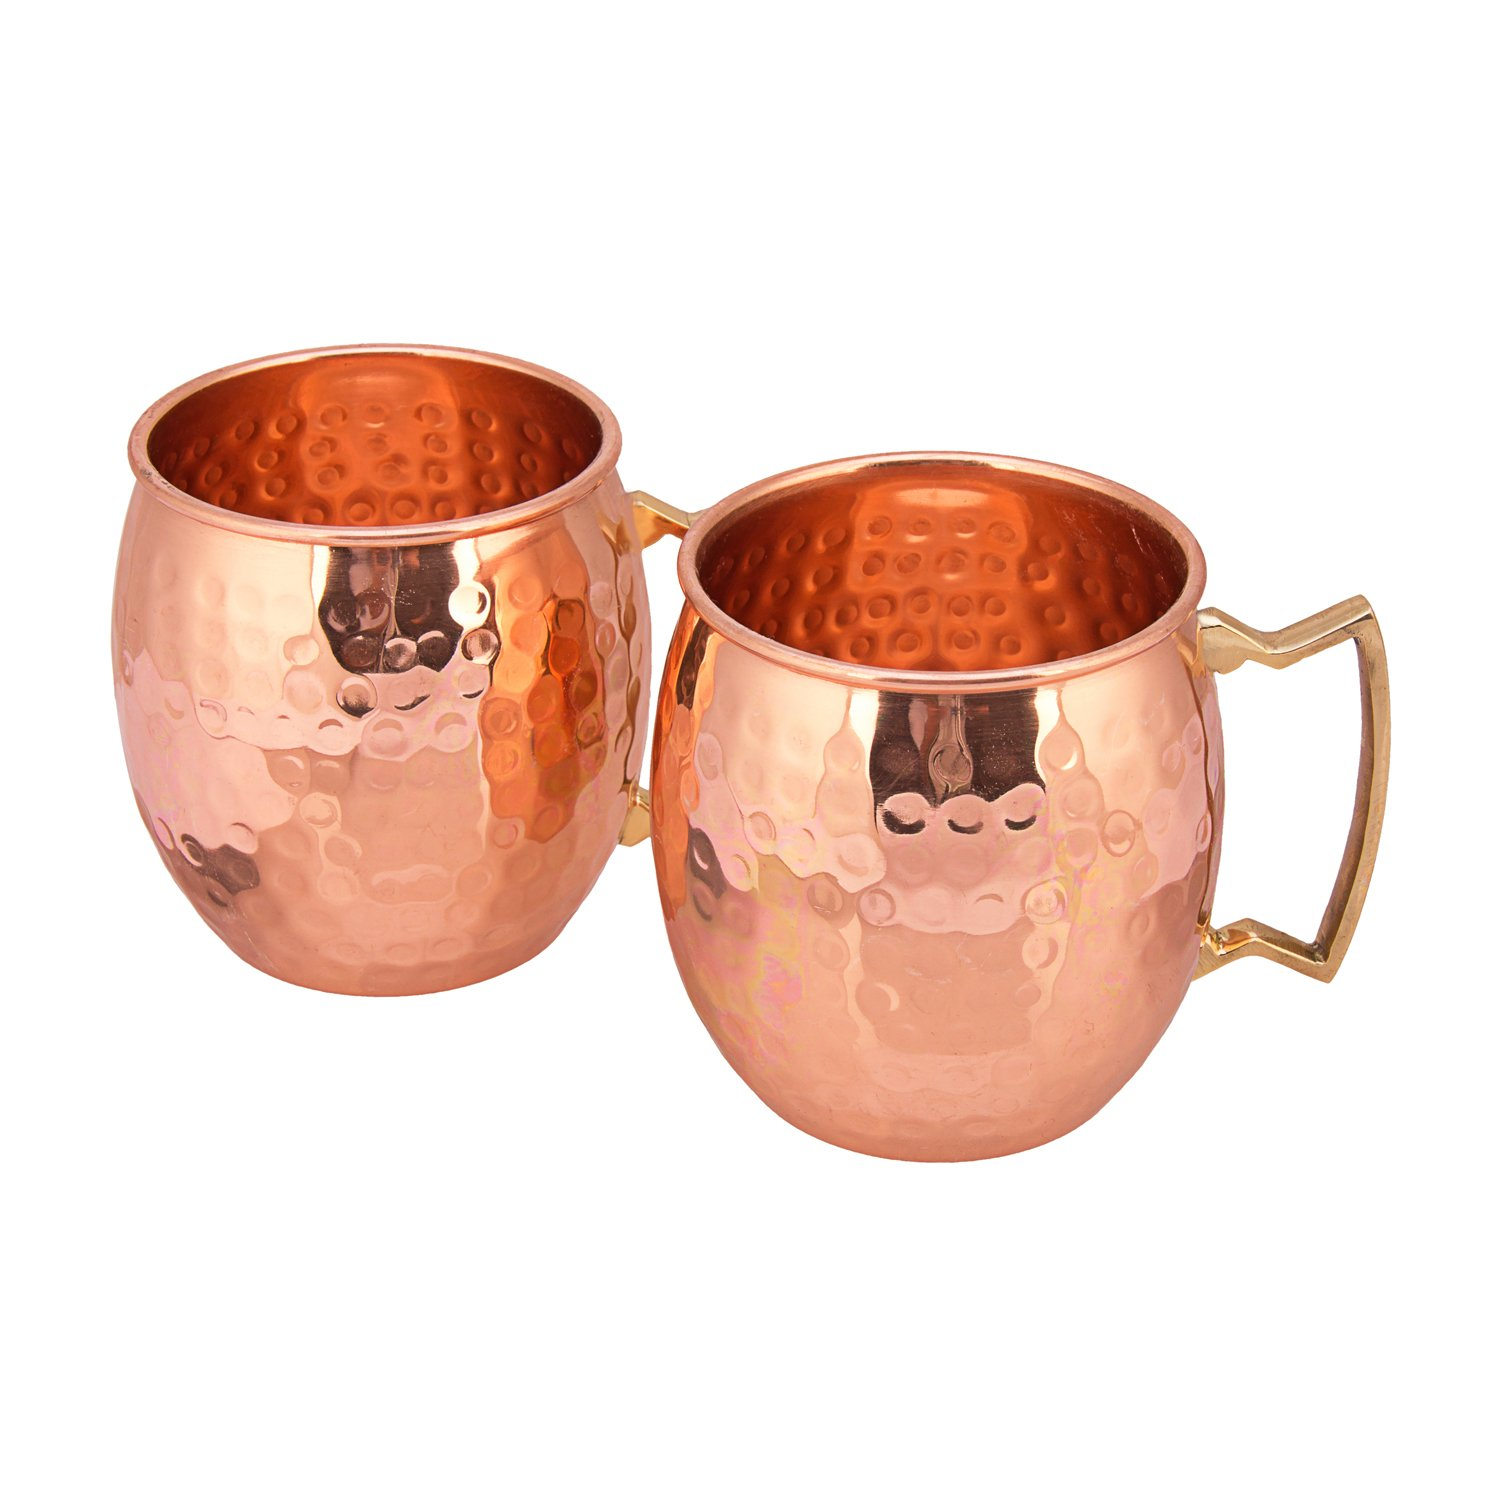 TREETOP Copper Mugs (Set of 2) | PREMIUM QUALITY |475 ML|Solid Copper Moscow Mule, Hammered Finish, Extra Shine | 100% Genuine Product | Wonted